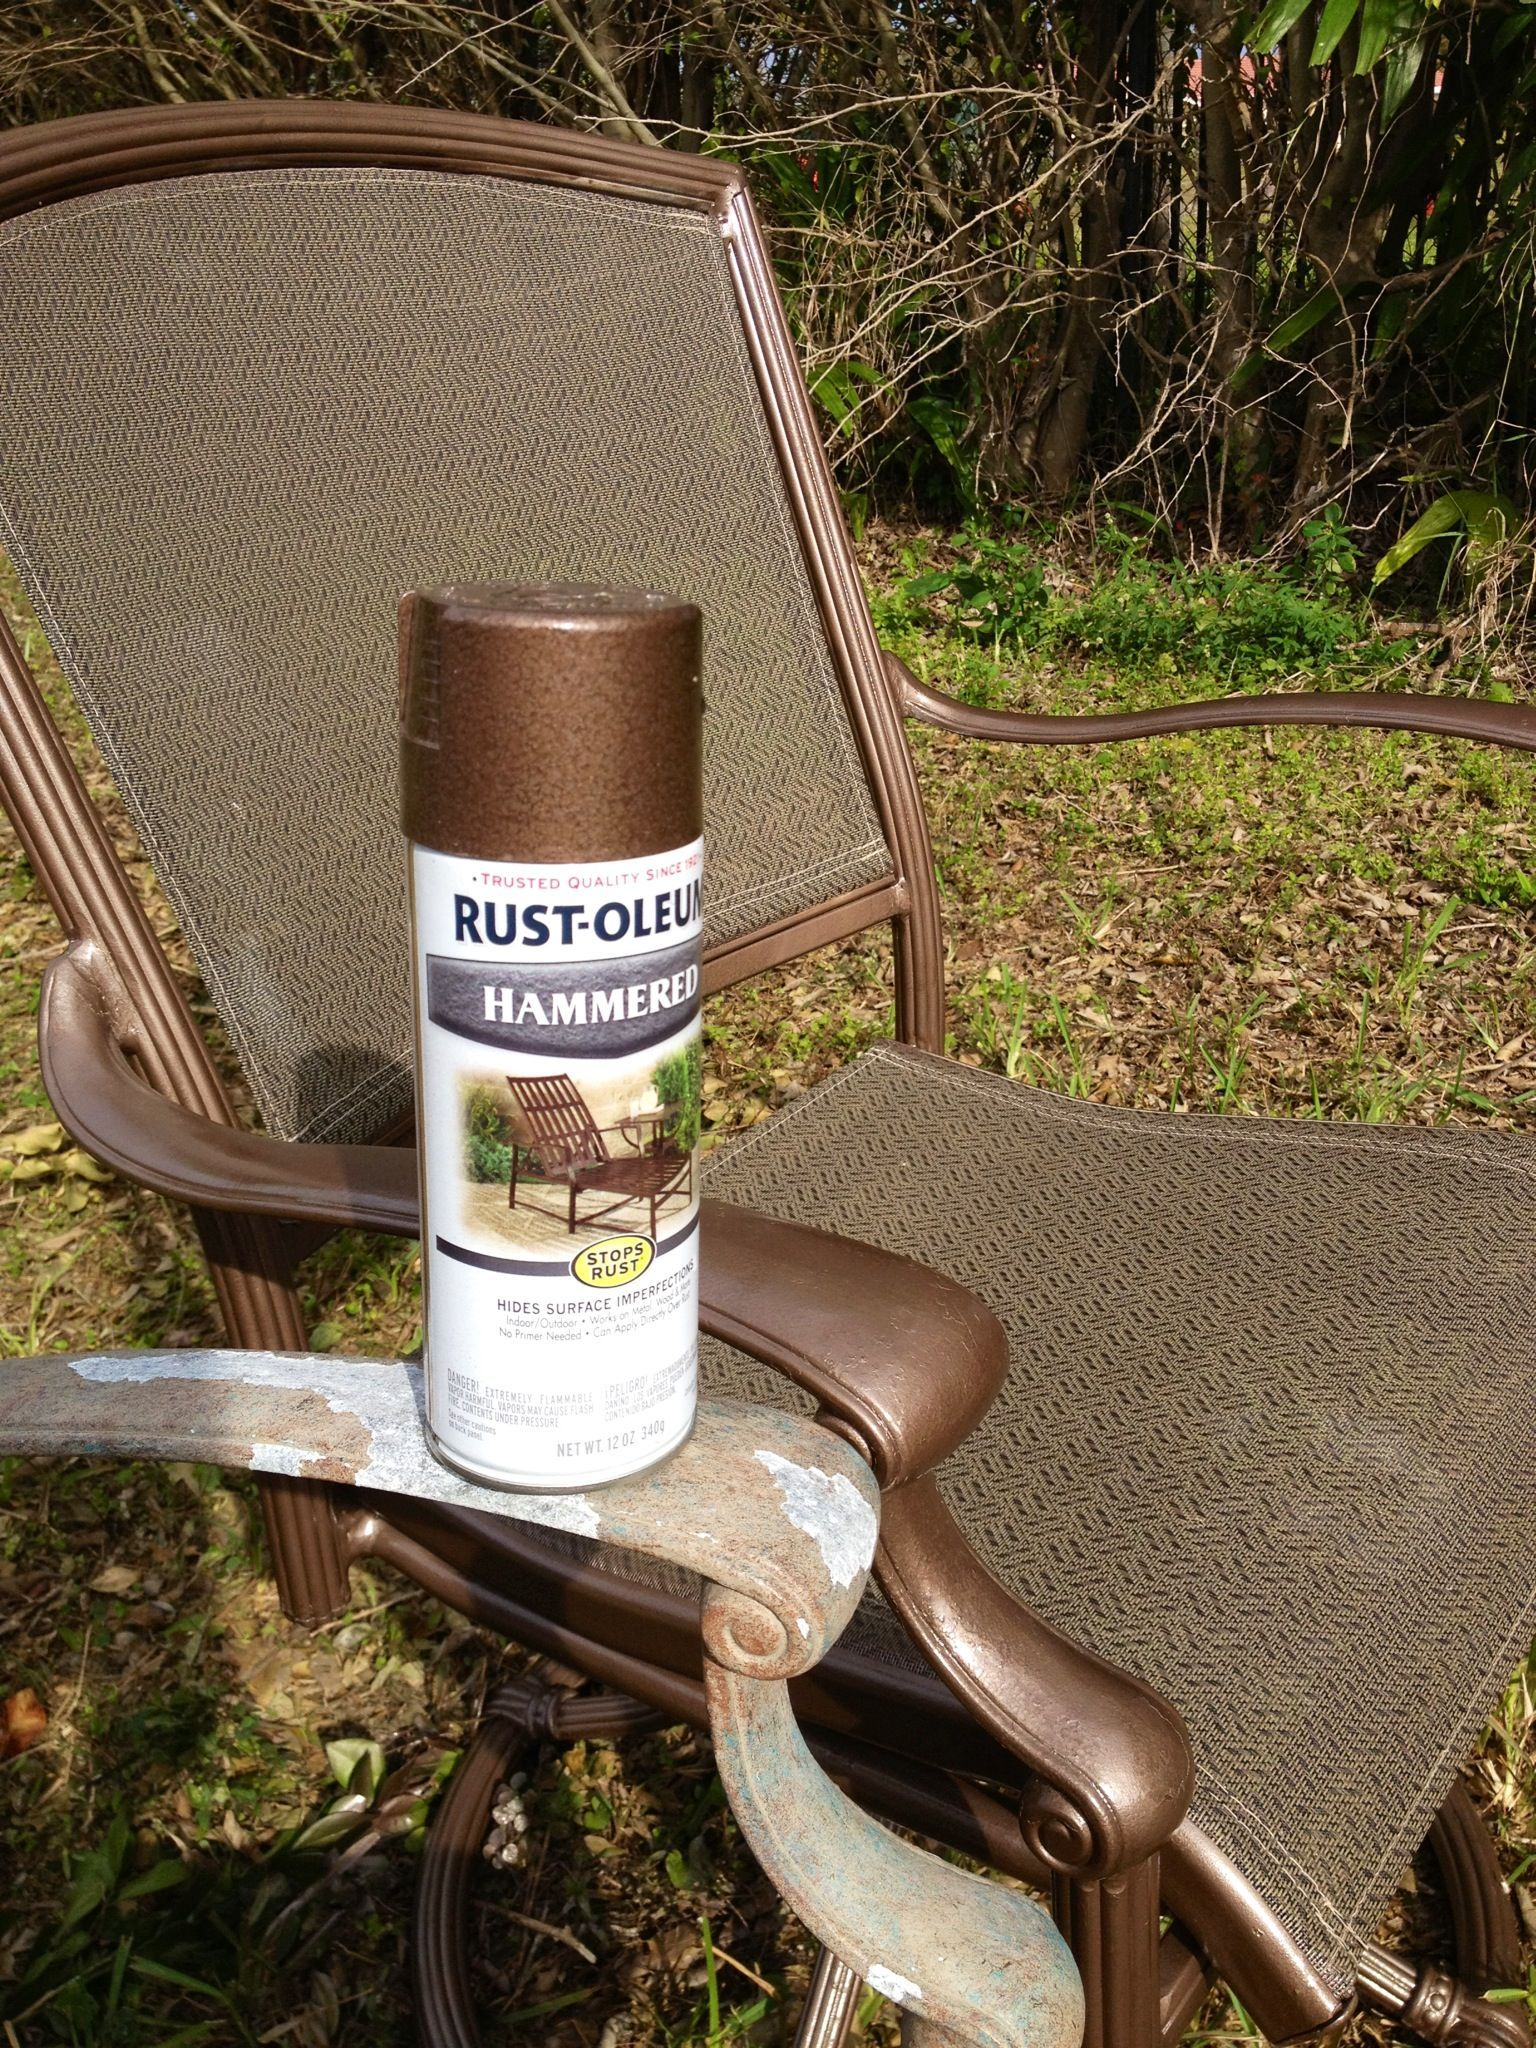 Rustoleum Hammered Metallic Spray Paint For My Upcycled Patio Set Love It Patio Furniture Makeover Painting Patio Furniture Metal Outdoor Furniture